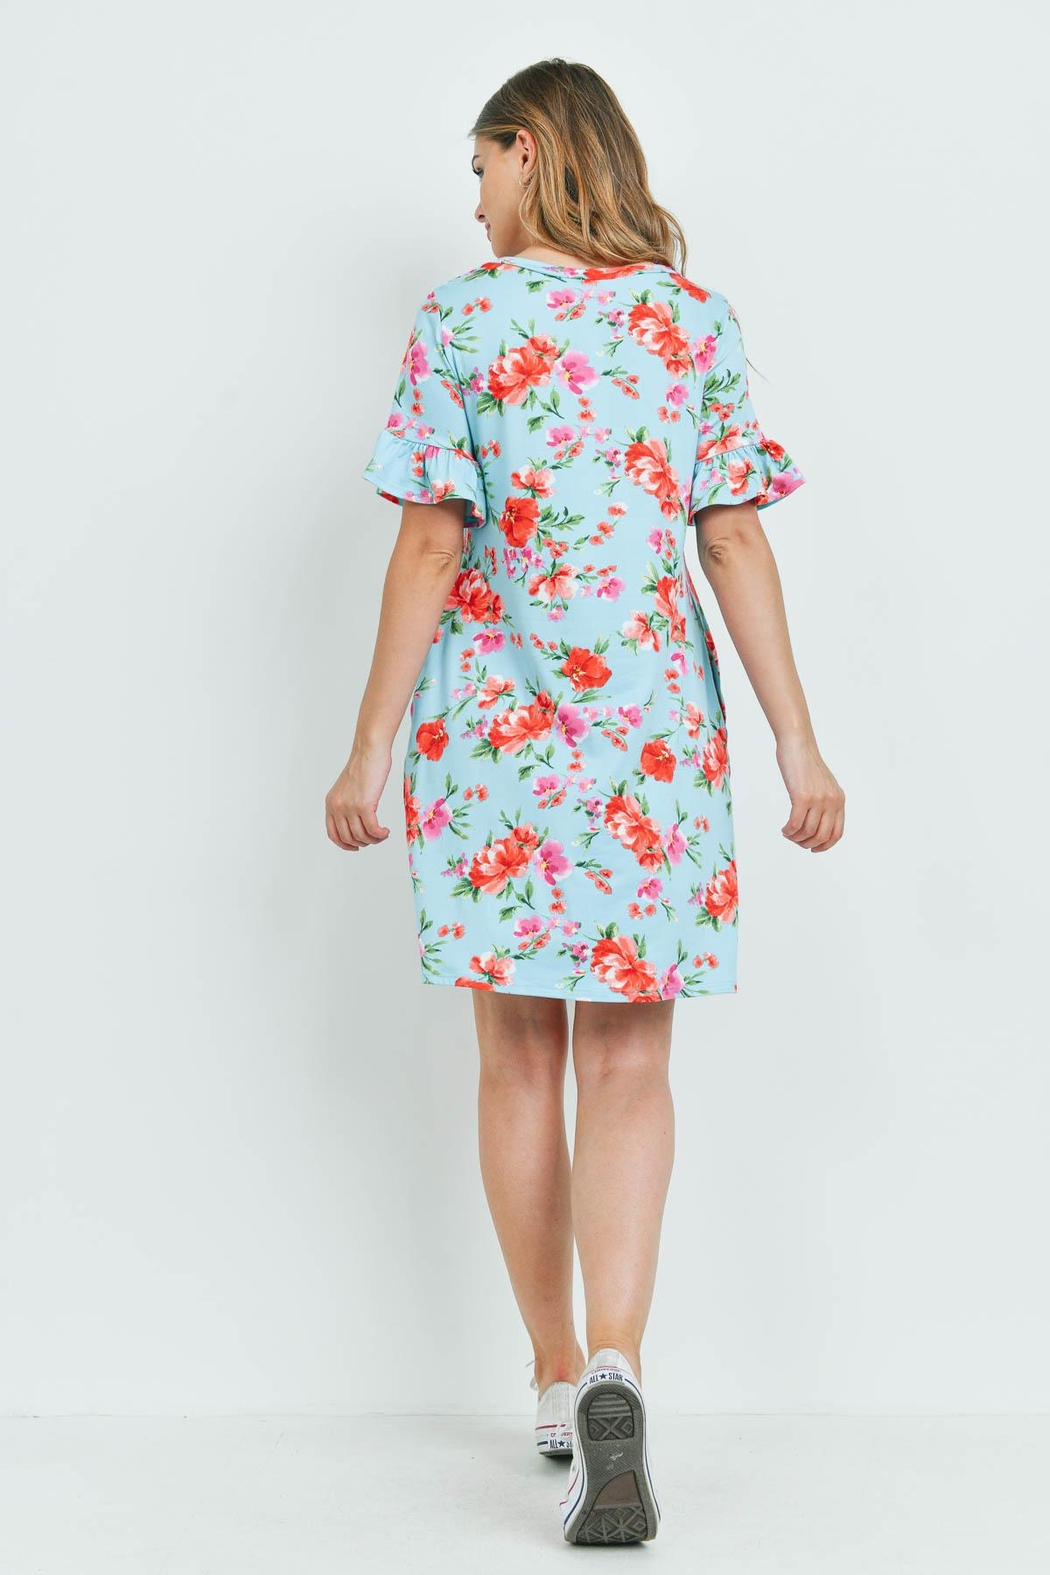 Riah Fashion Floral-Ruffle-Sleeves-Swing-Dress - Front Full Image